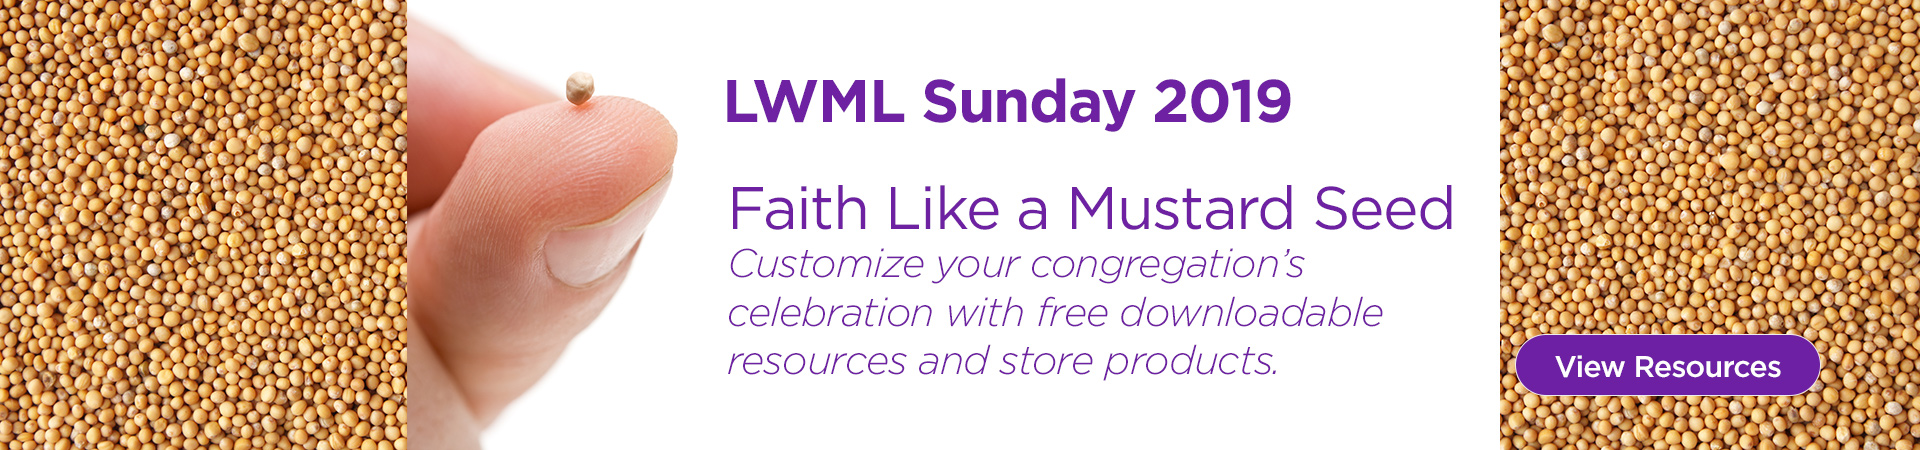 LWML Sunday 2019: Faith Like a Mustard Seed. Customize your congregation's celebration with free downloadable resources and store products.